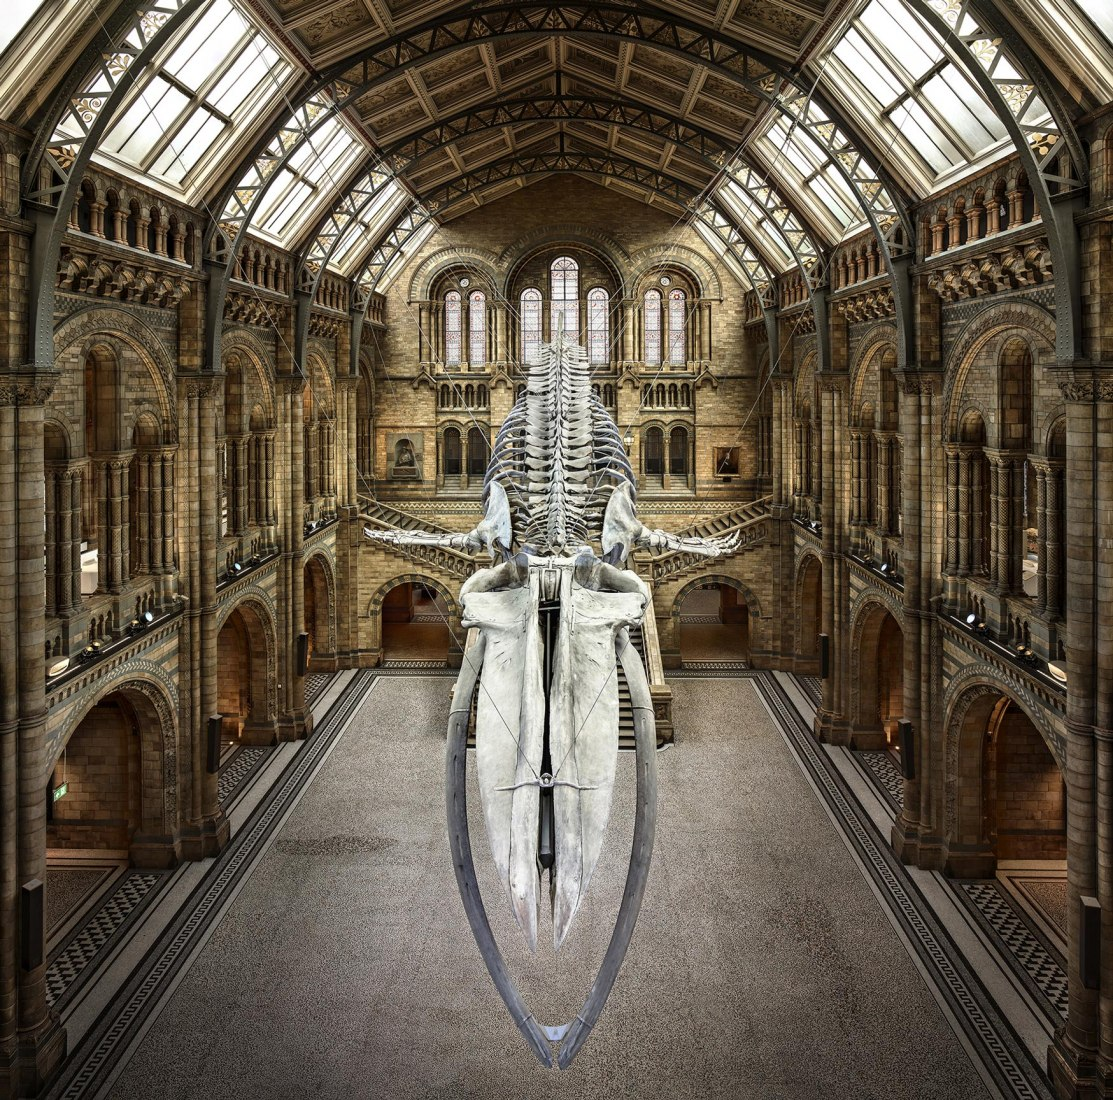 Balaenoptera musculus. 2017. Light jet, Exposure on high glossy paper, All-Dibond. 170 x 170 cm. Photograph by Christian Voigt. Cortesy of Galería Lucía Mendoza.